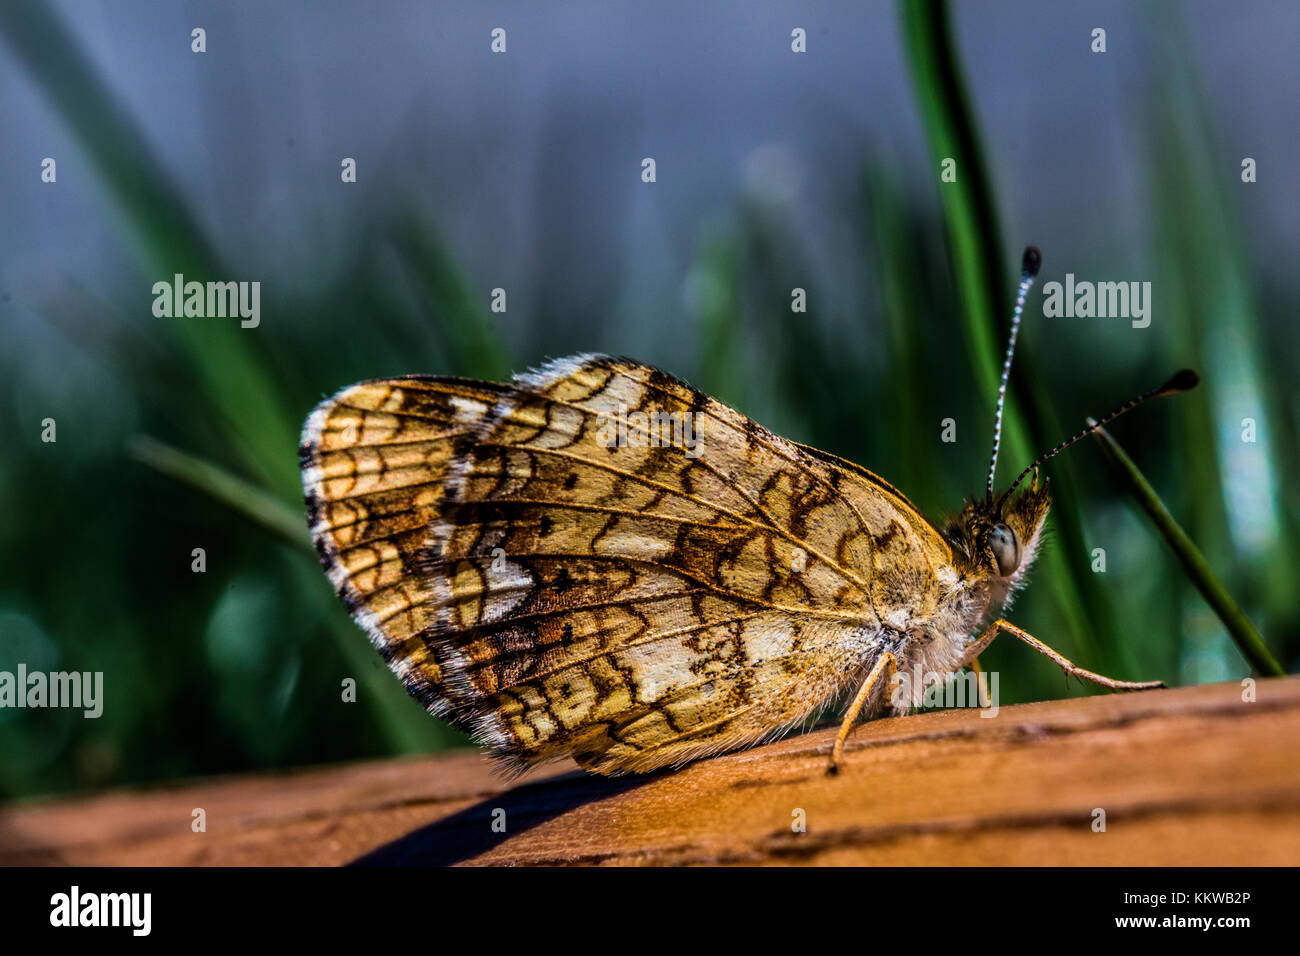 Macro photo of a moth butterfly on a piece of wood in a grass field. - Stock Image